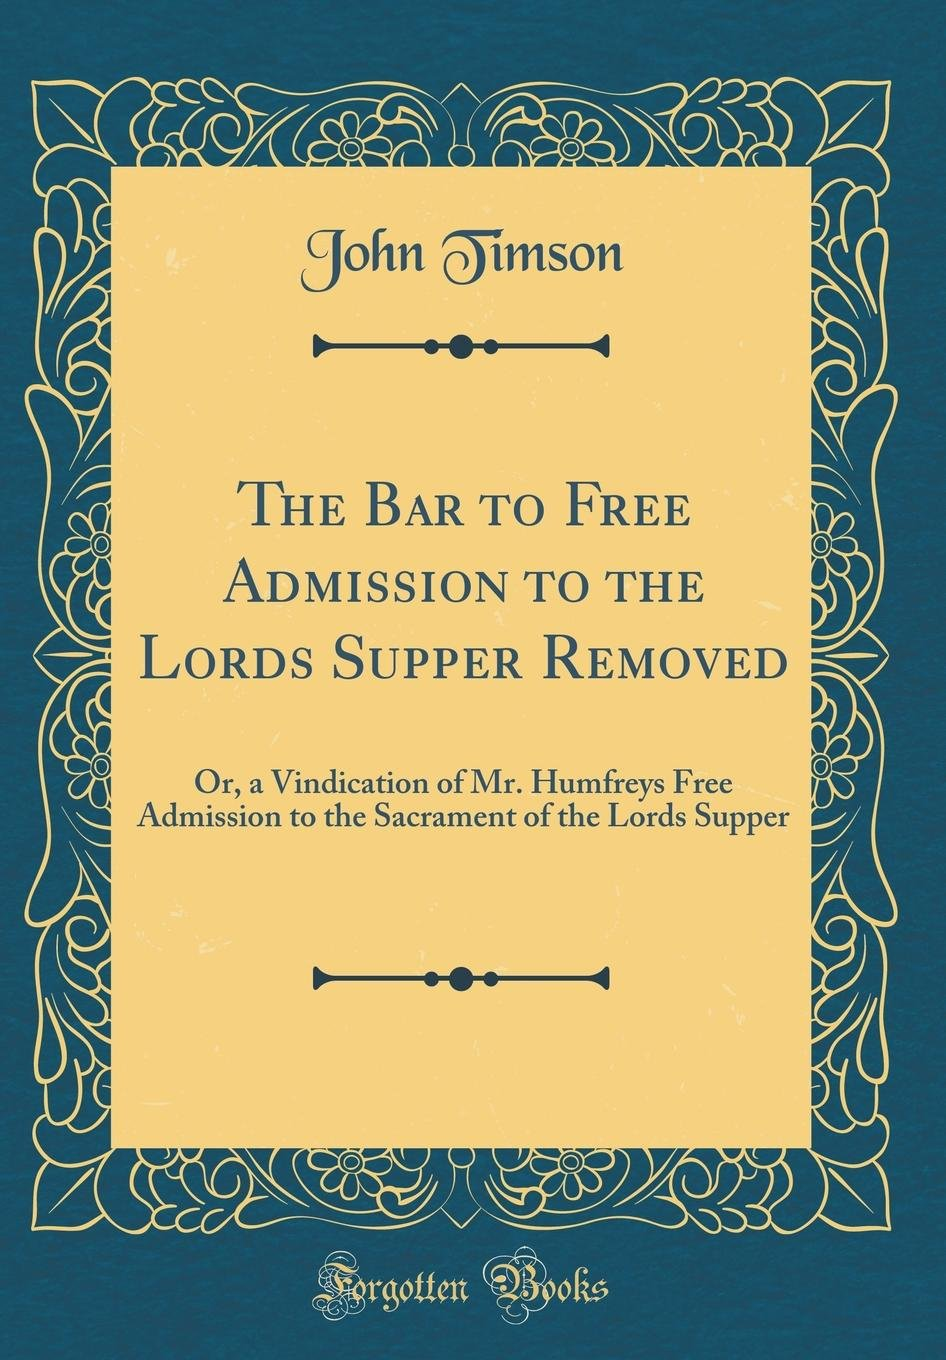 The Bar to Free Admission to the Lords Supper Removed: Or, a Vindication of Mr. Humfreys Free Admission to the Sacrament of the Lords Supper (Classic Reprint) pdf epub